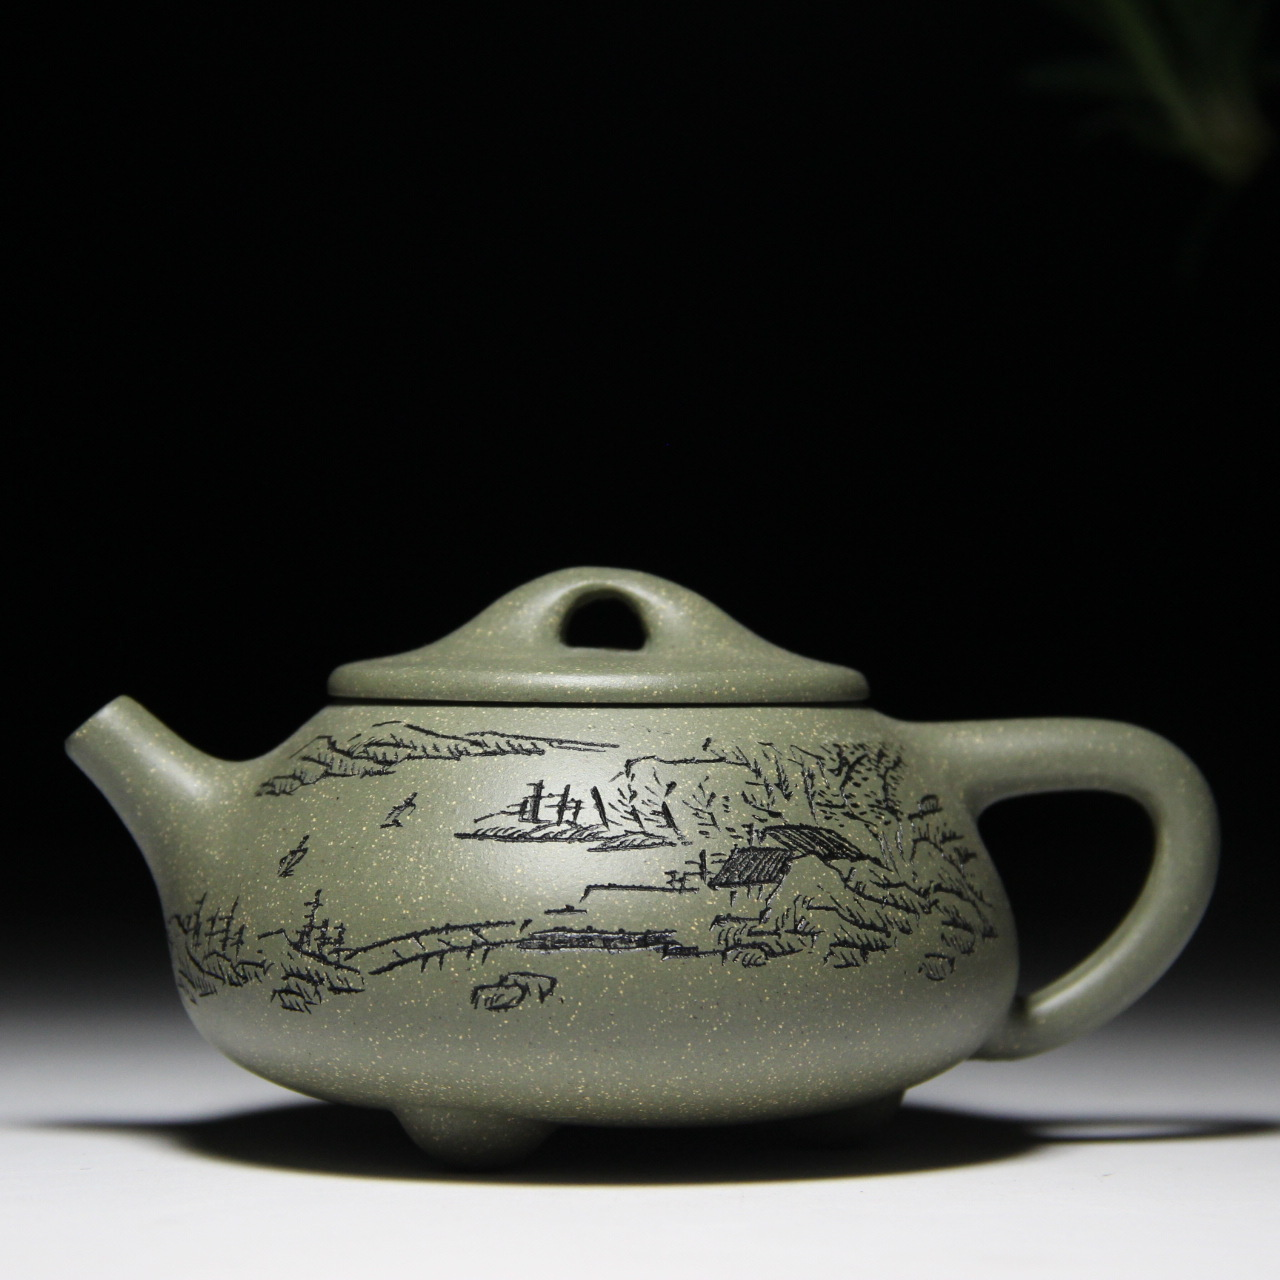 Landscape painting shipiao pot 180 cc ore section of the mud Yixing quality goods are recommended